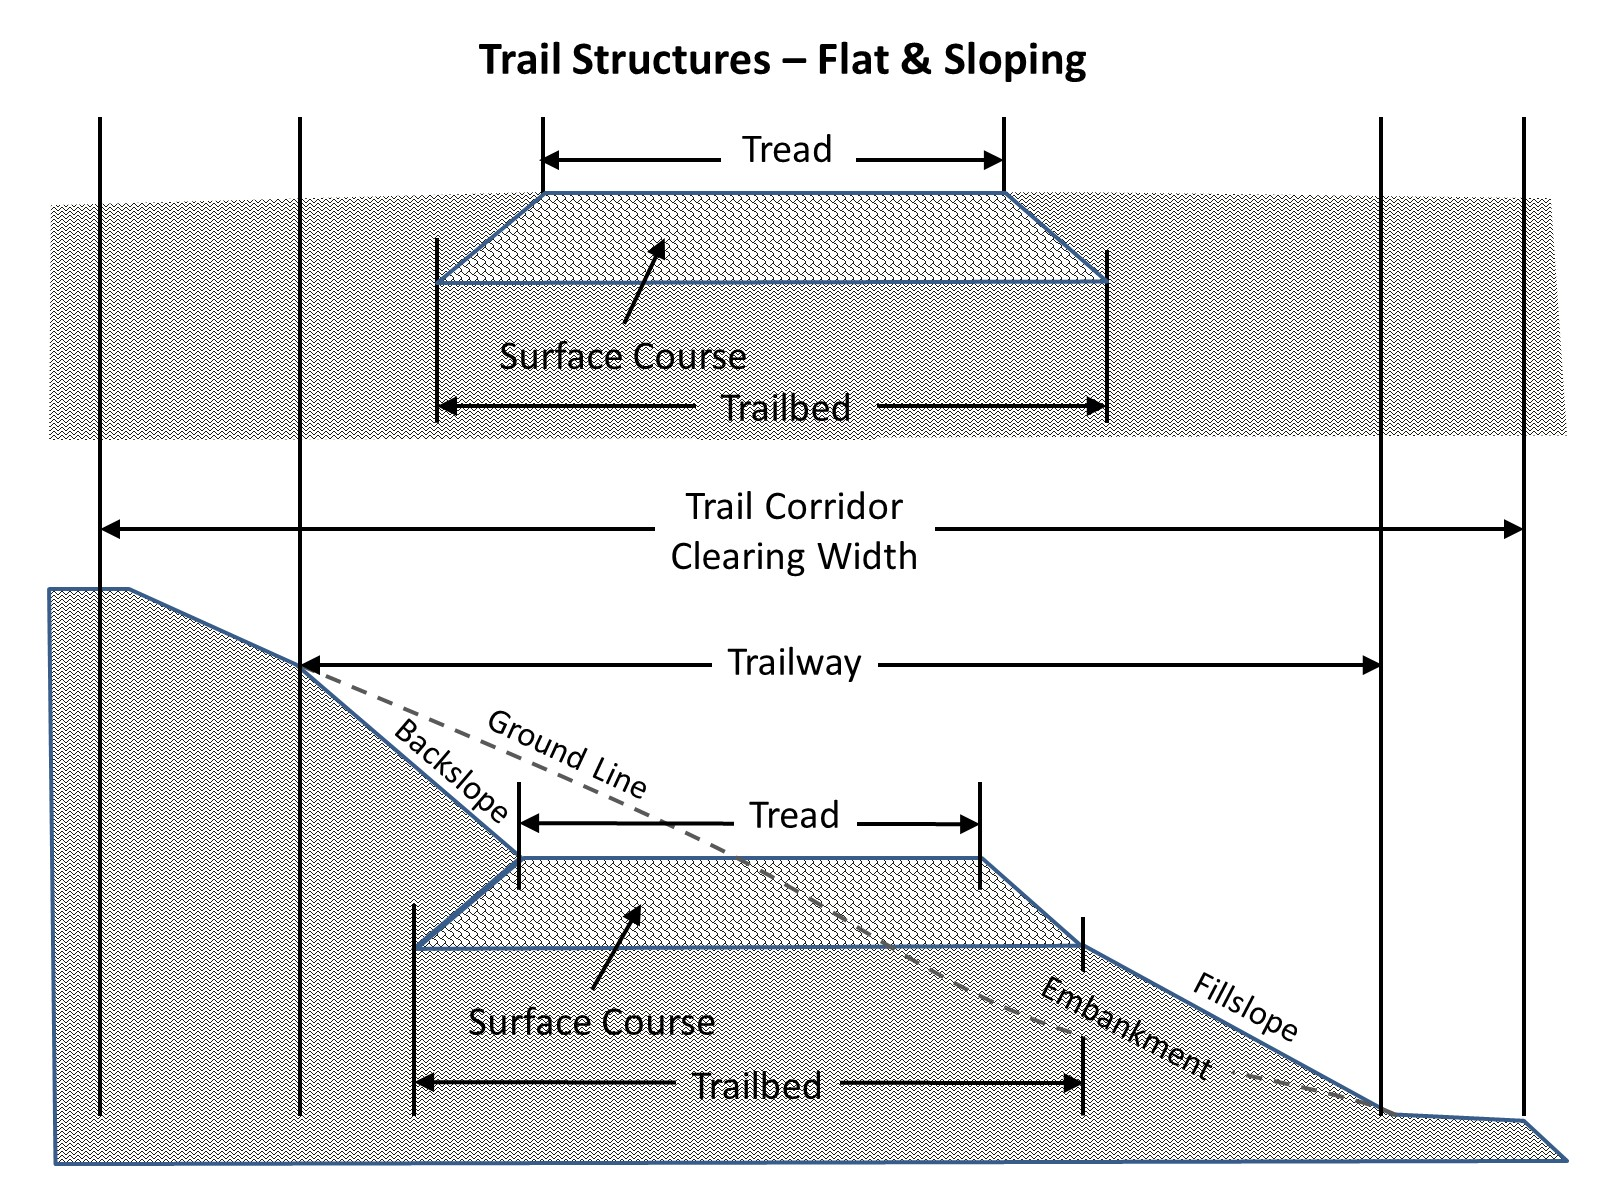 Trail structure diagrams